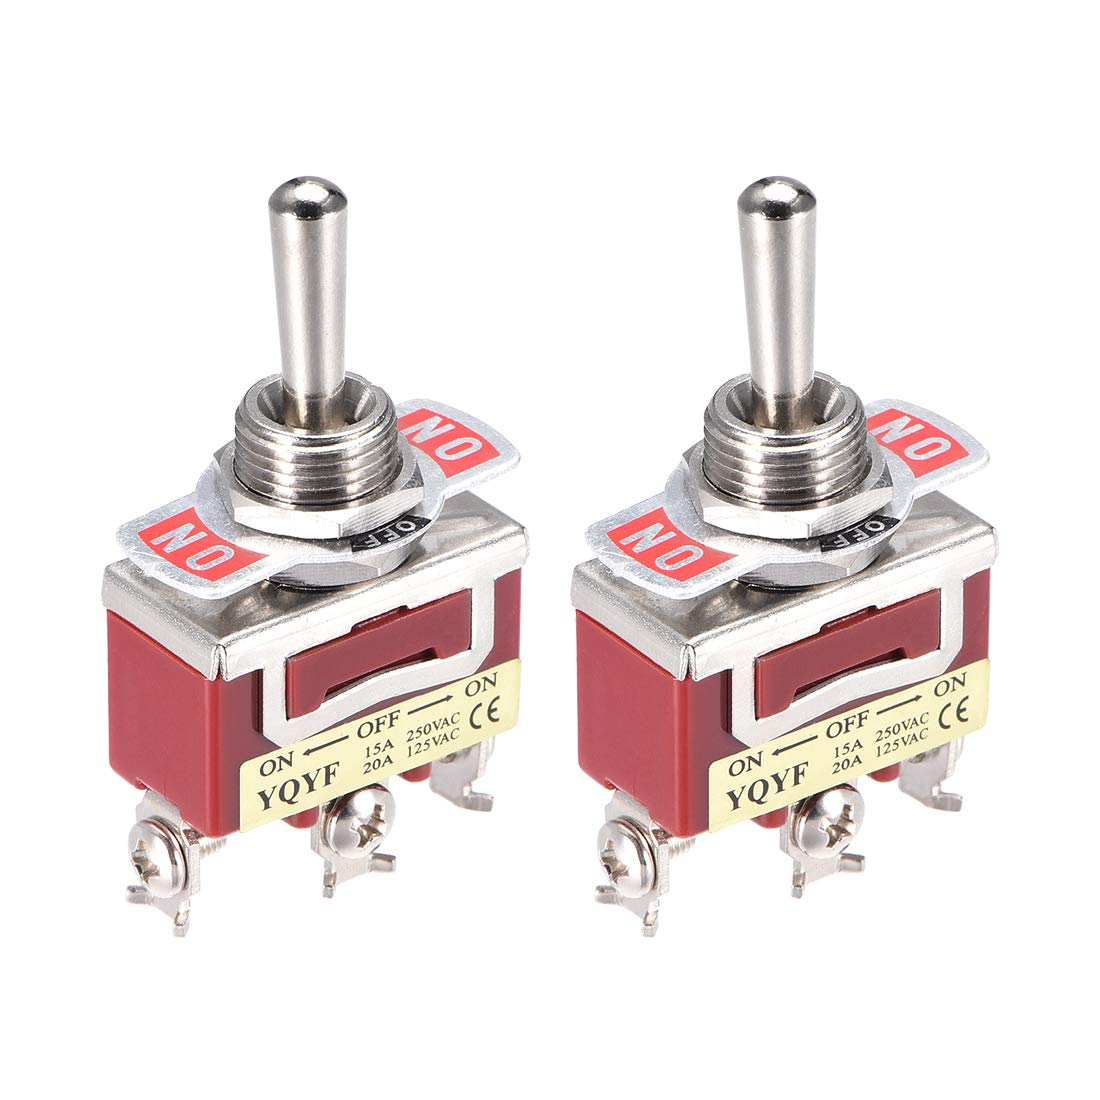 200mA Average Rectified Forward Current Pack of 5 Inc. 30V Repetitive Peak Reverse Voltage Surface Mount NTE Electronics NTE637 Schottky Barrier Diode